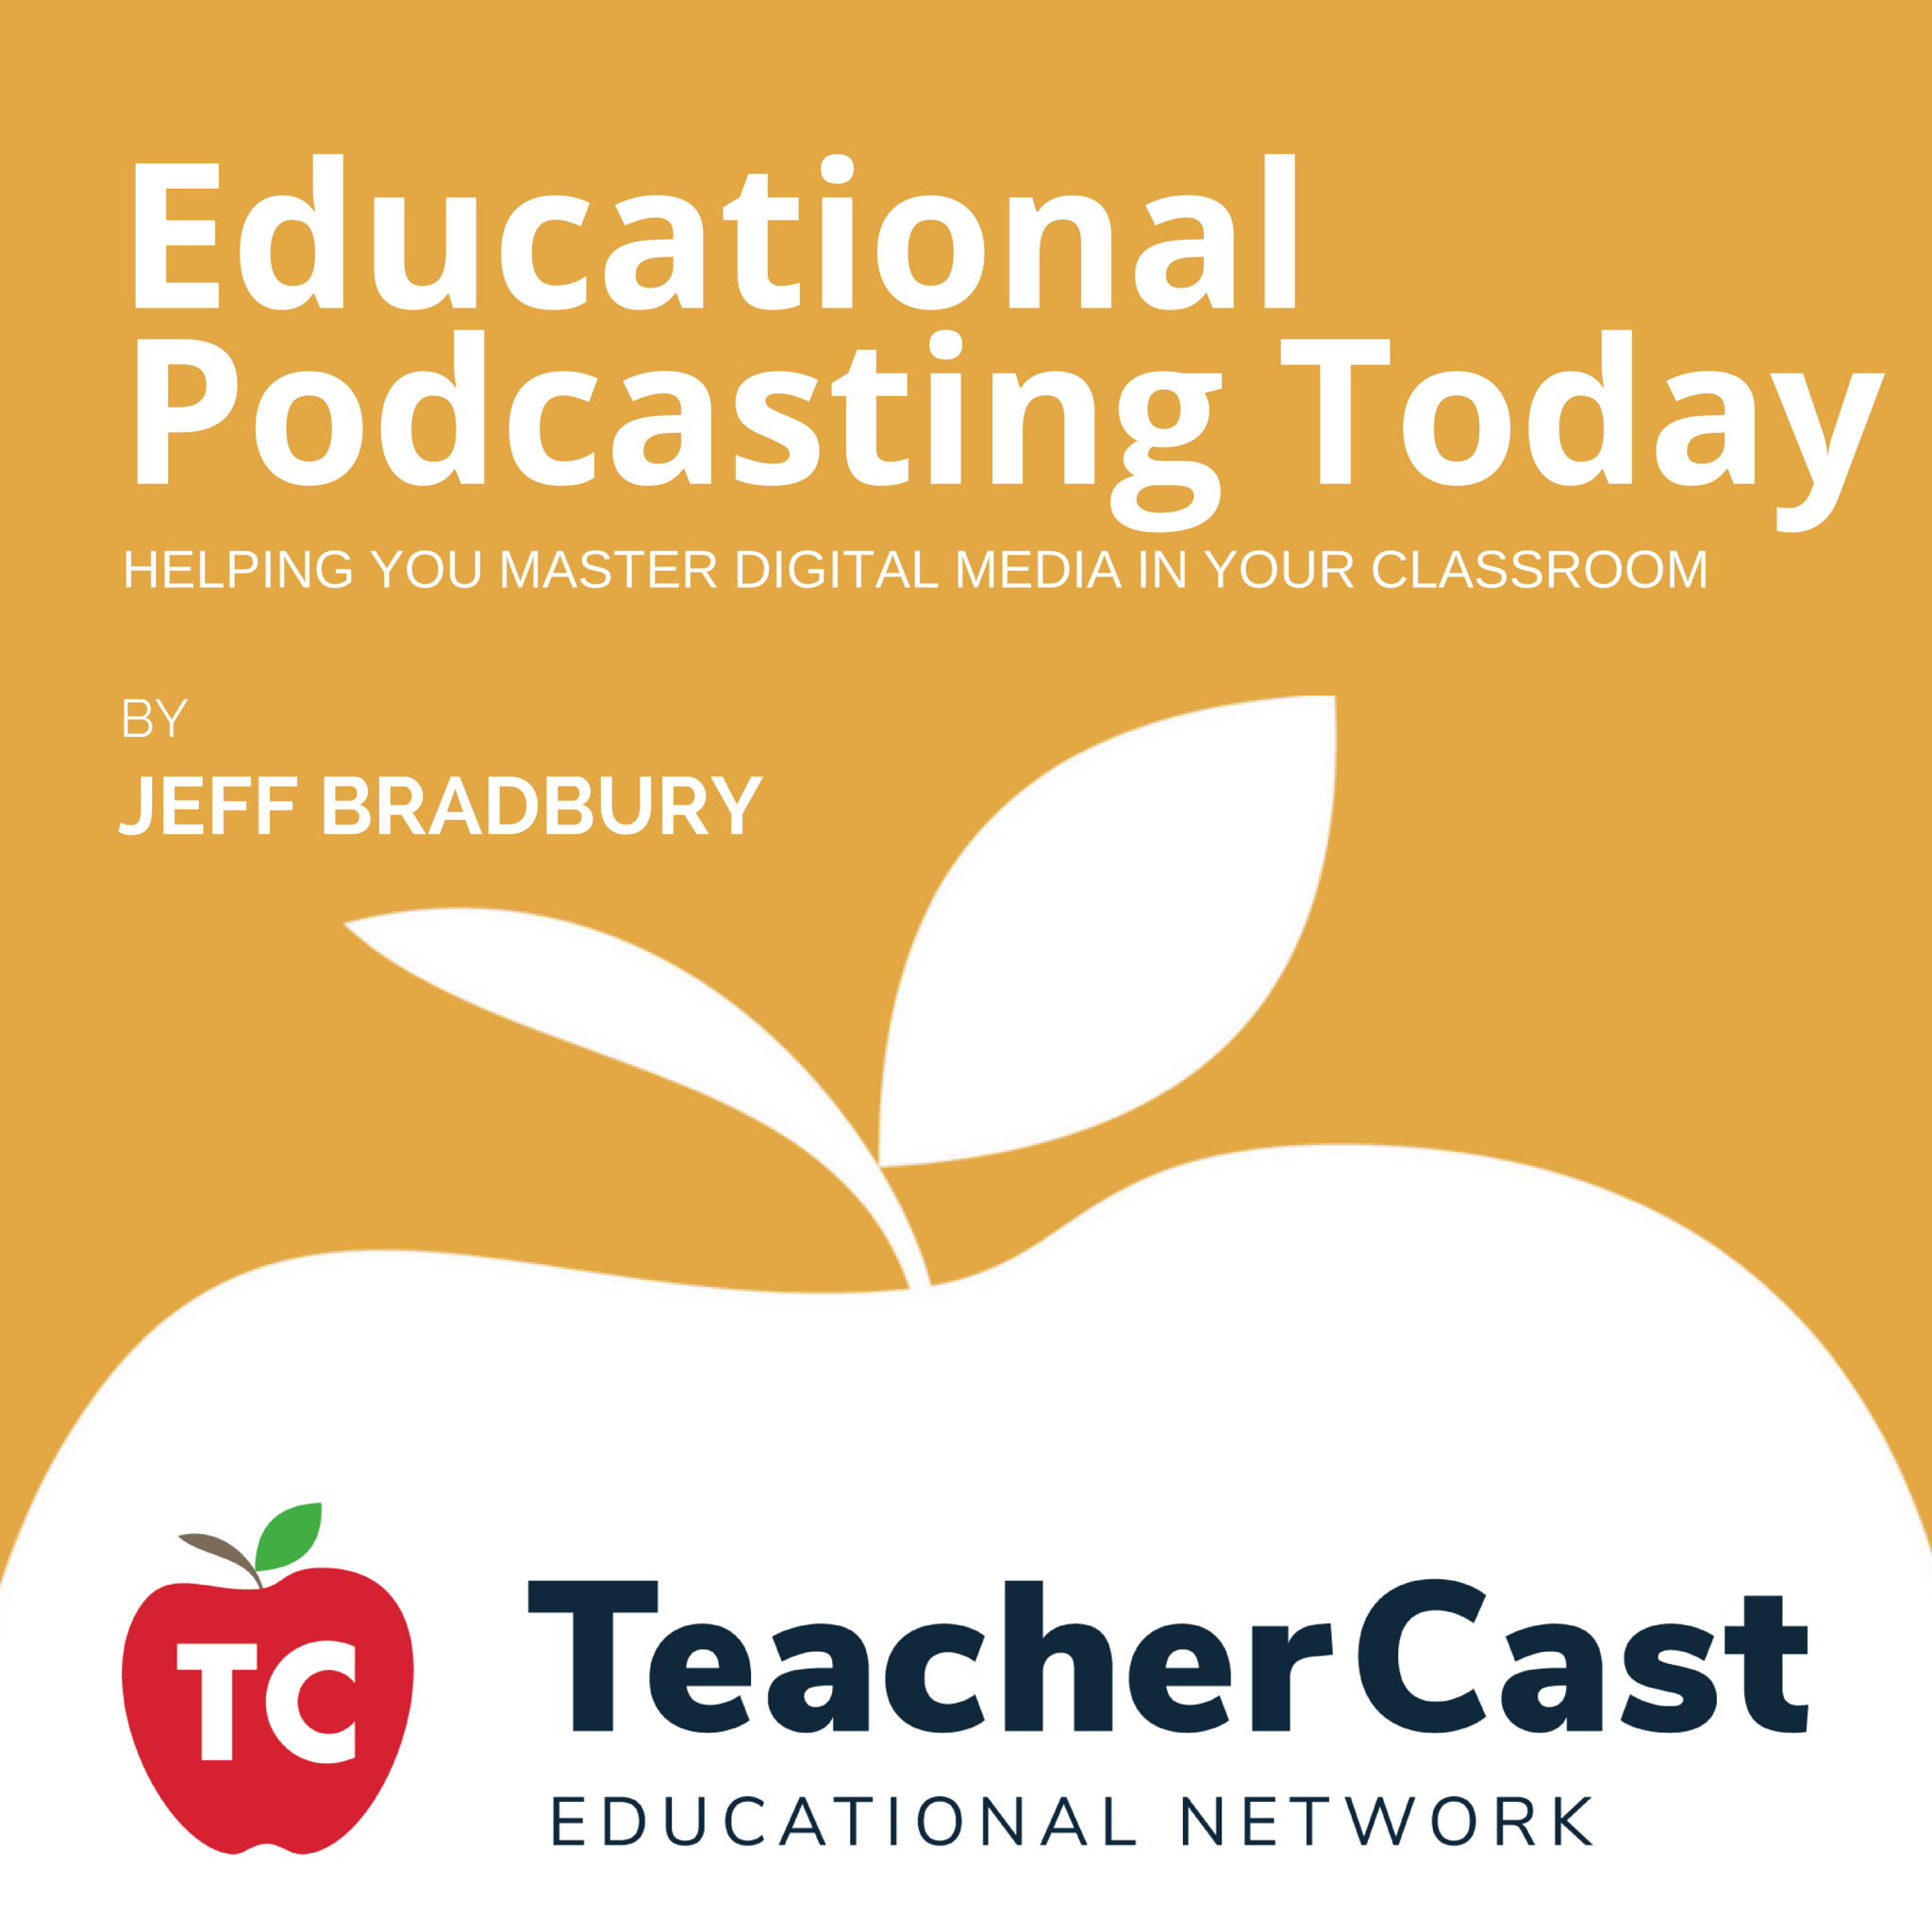 Educational Podcasting Today – The TeacherCast Educational Network